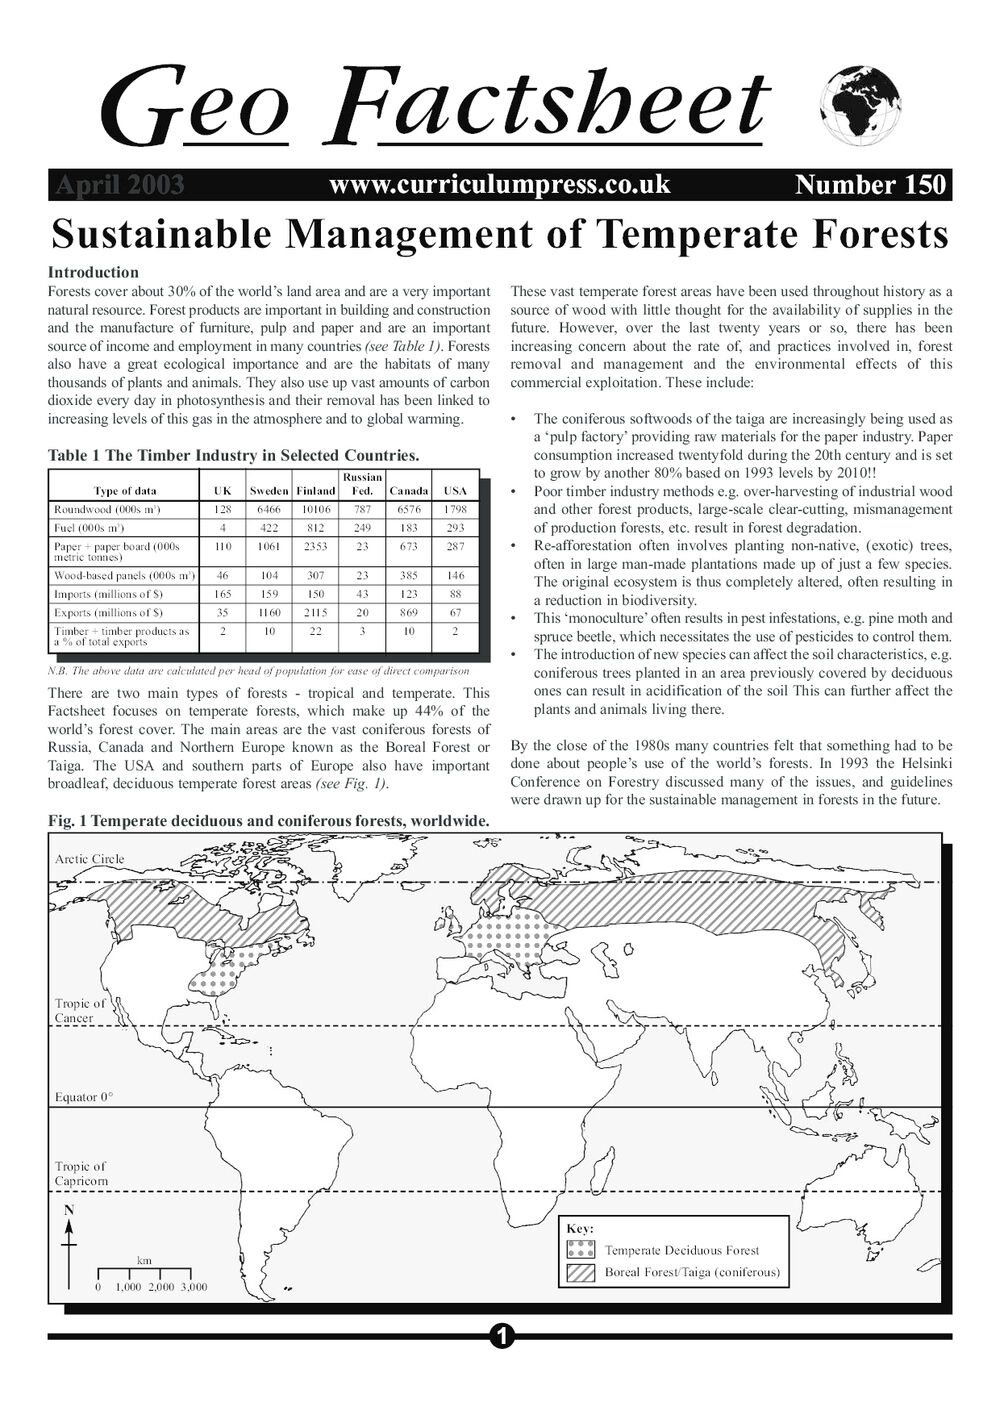 150 Sust Management   Temperate Forests